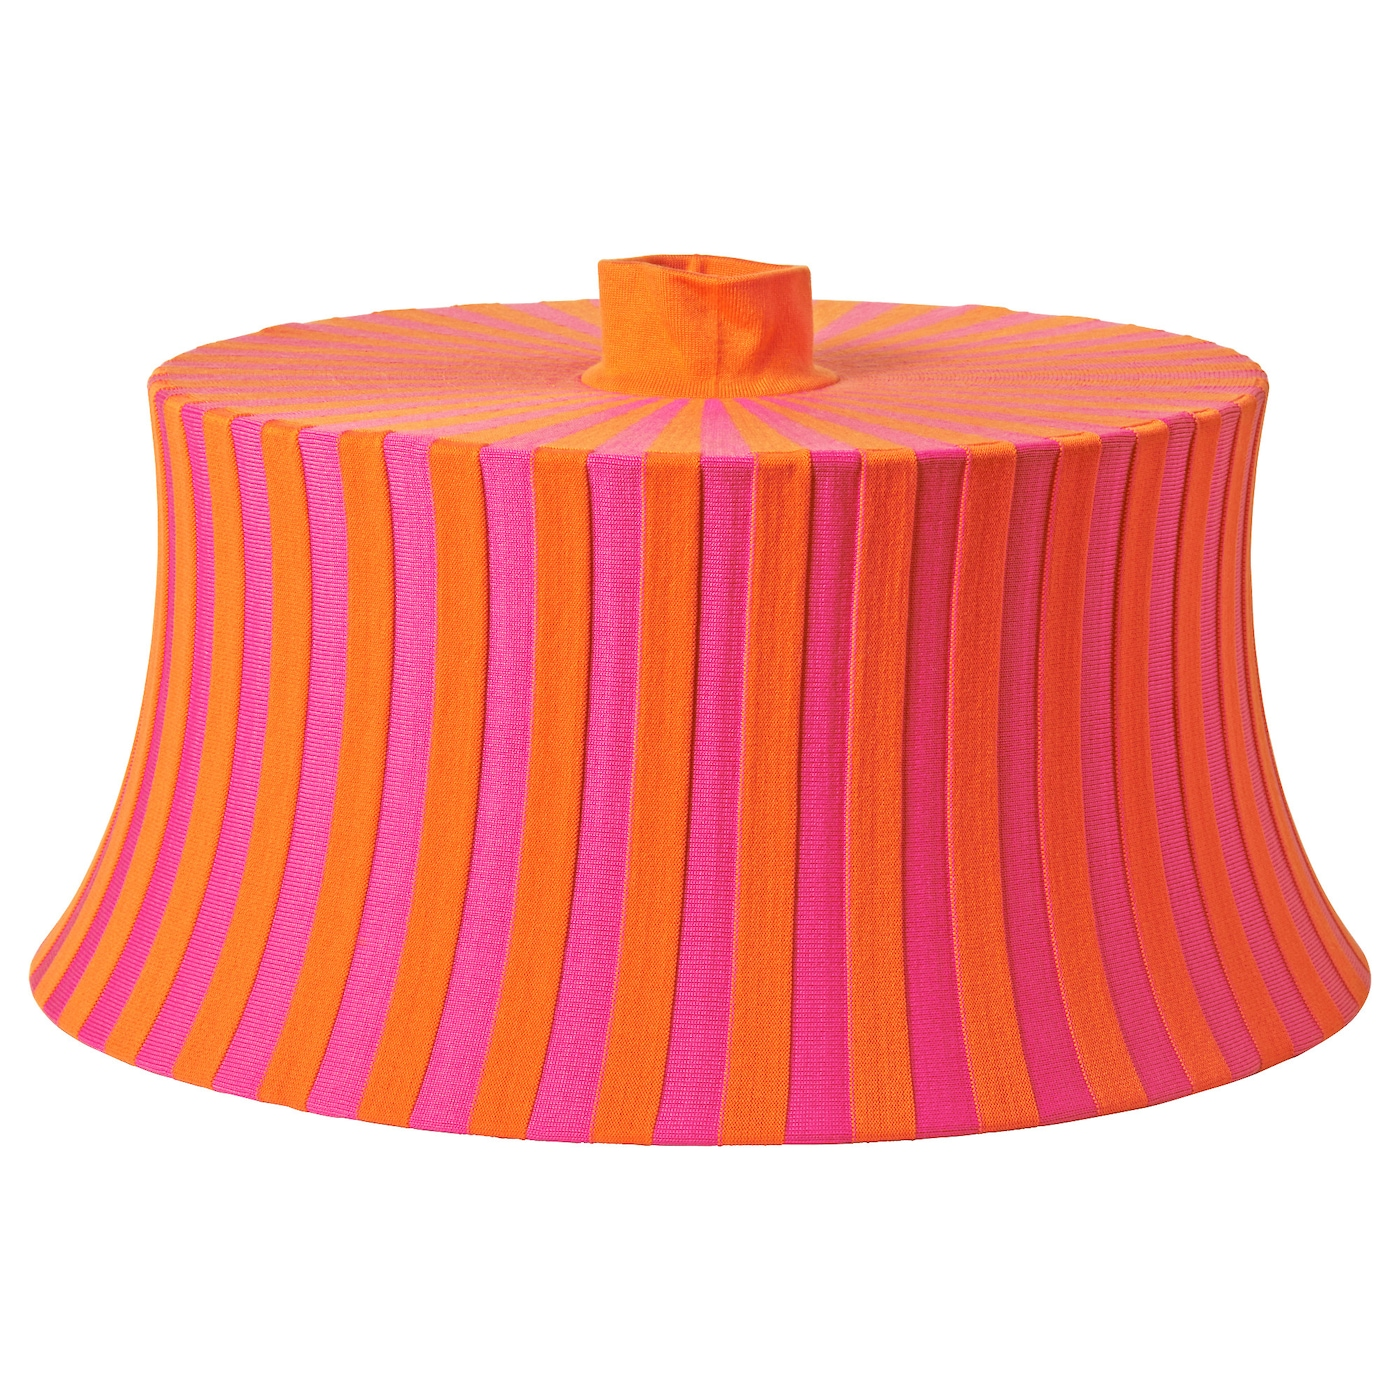 Shades Of Orange lamp shades & light shades | ikea